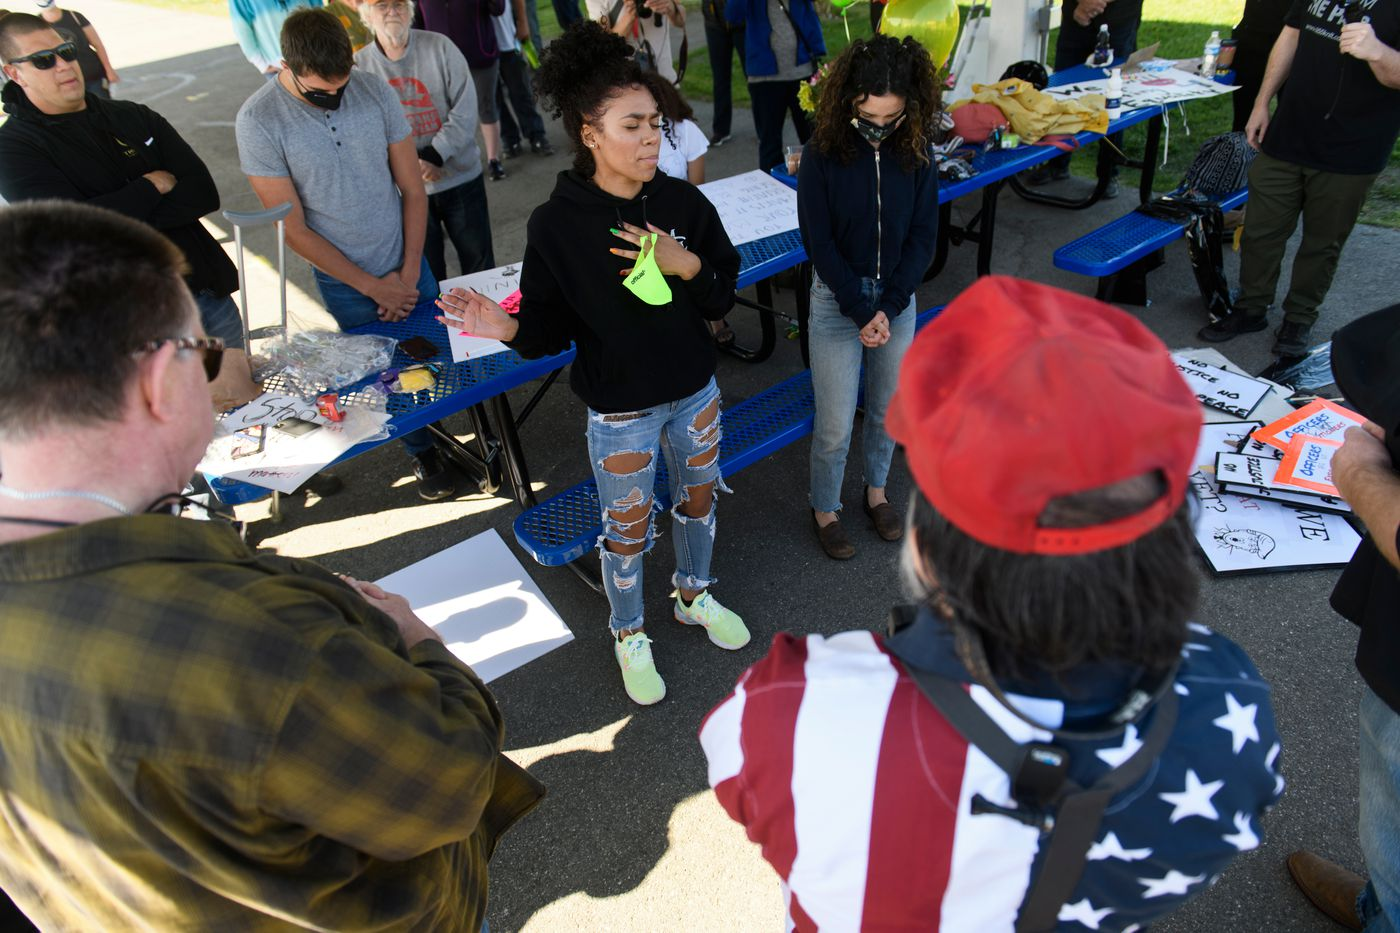 Eden Johnson leads a prayer before the event begins. A large crowd gathered and marched through Palmer to protest racism and police brutality on Saturday, June 6, 2020. (Marc Lester / ADN)